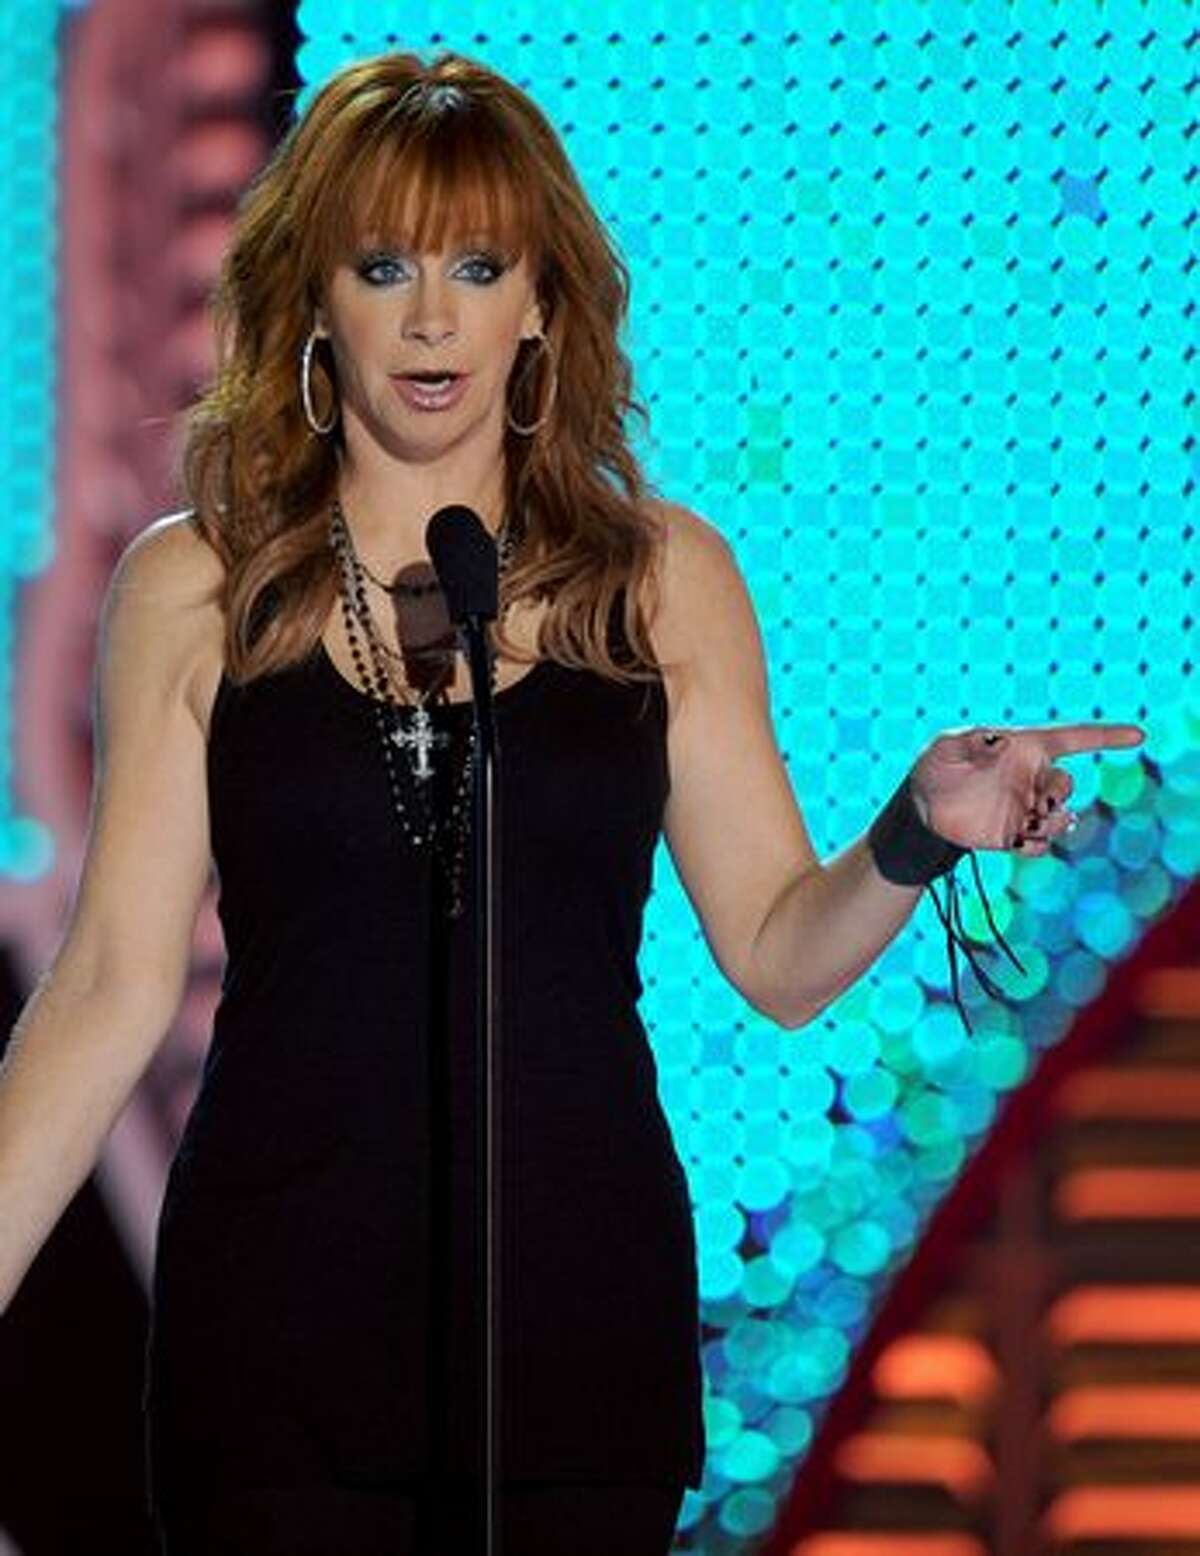 Singer Reba McEntire speaks onstage during the American Country Awards 2010 held at the MGM Grand Garden Arena in Las Vegas, Nevada.